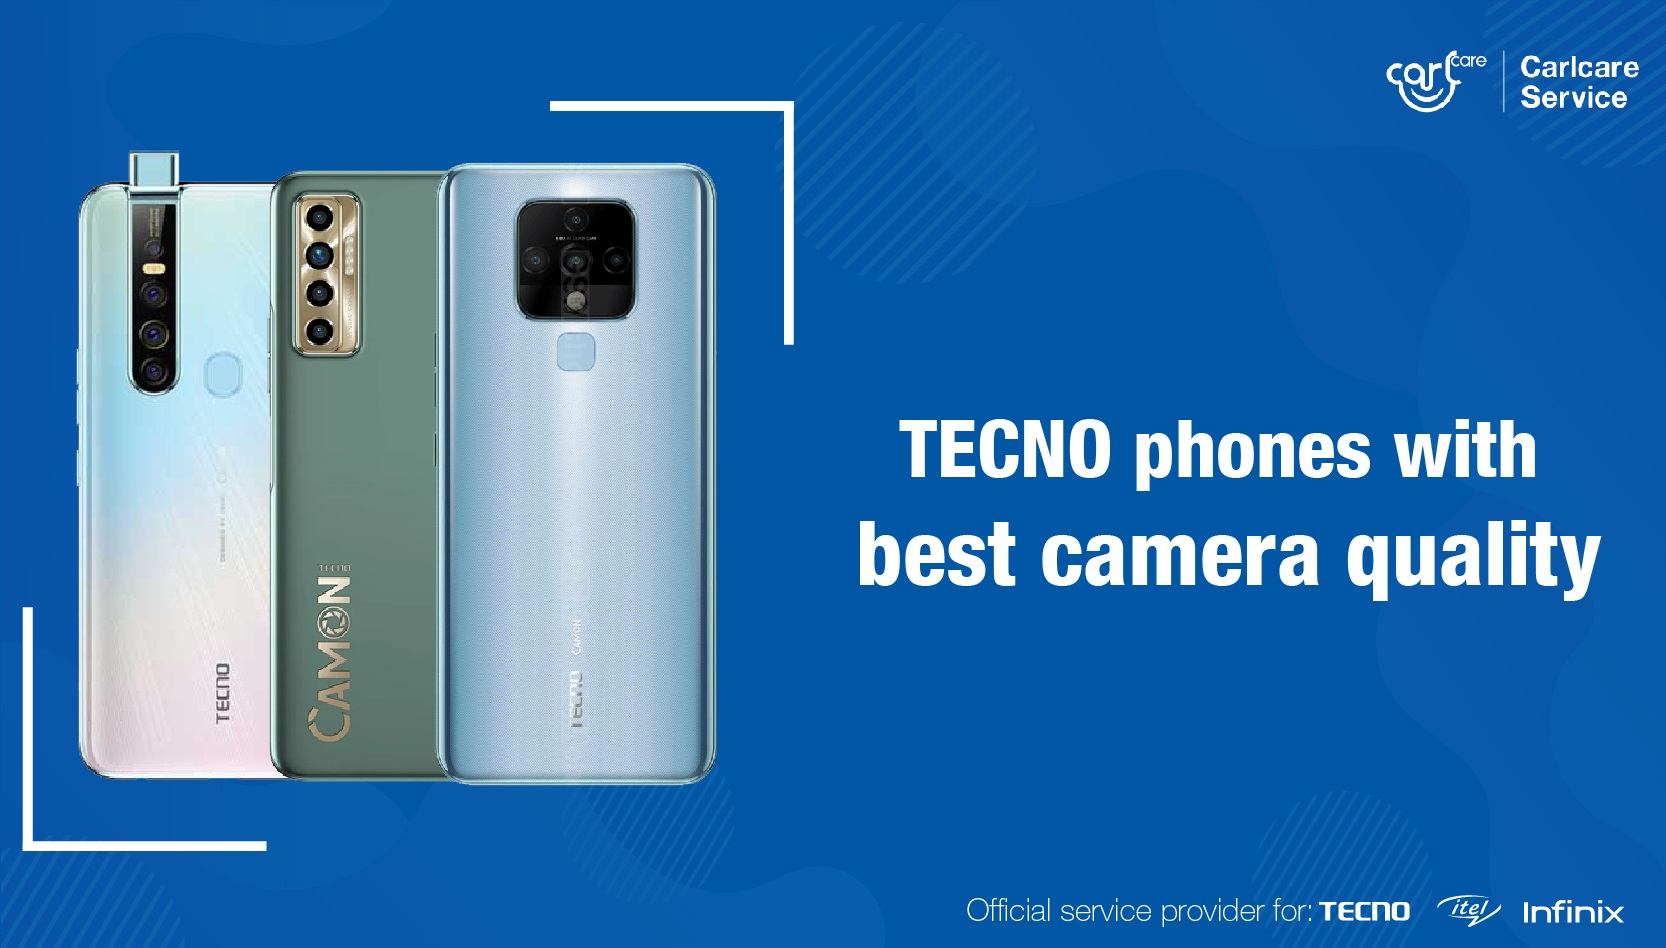 TECNO Phones with the Best Camera Quality